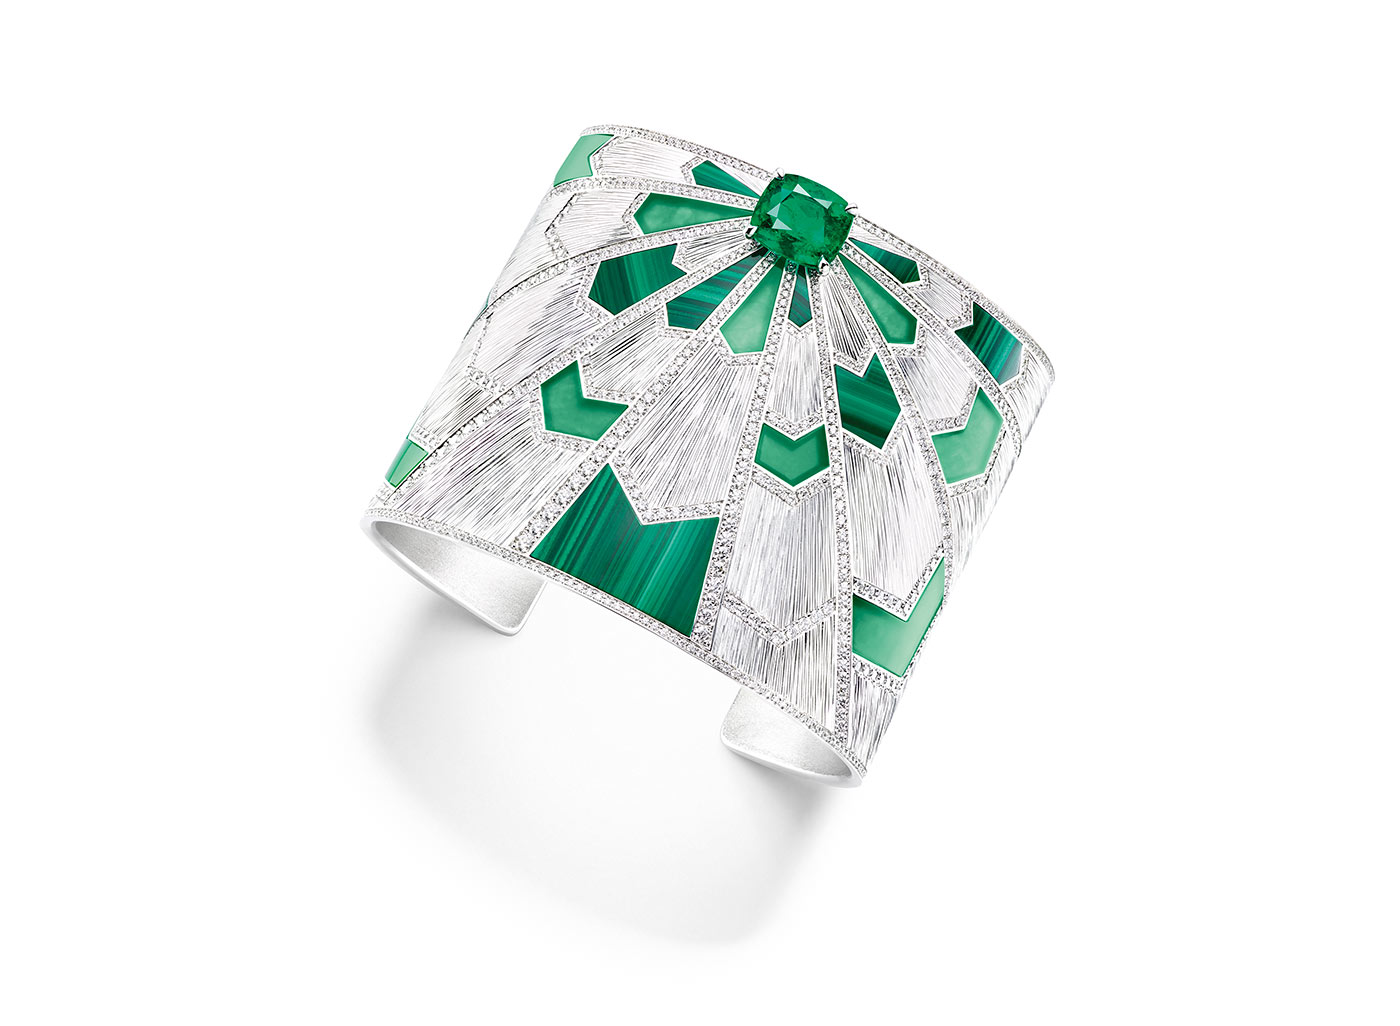 Piaget 'Sunlight Journey' cuff bracelet with malachite, emerald and diamonds in white gold